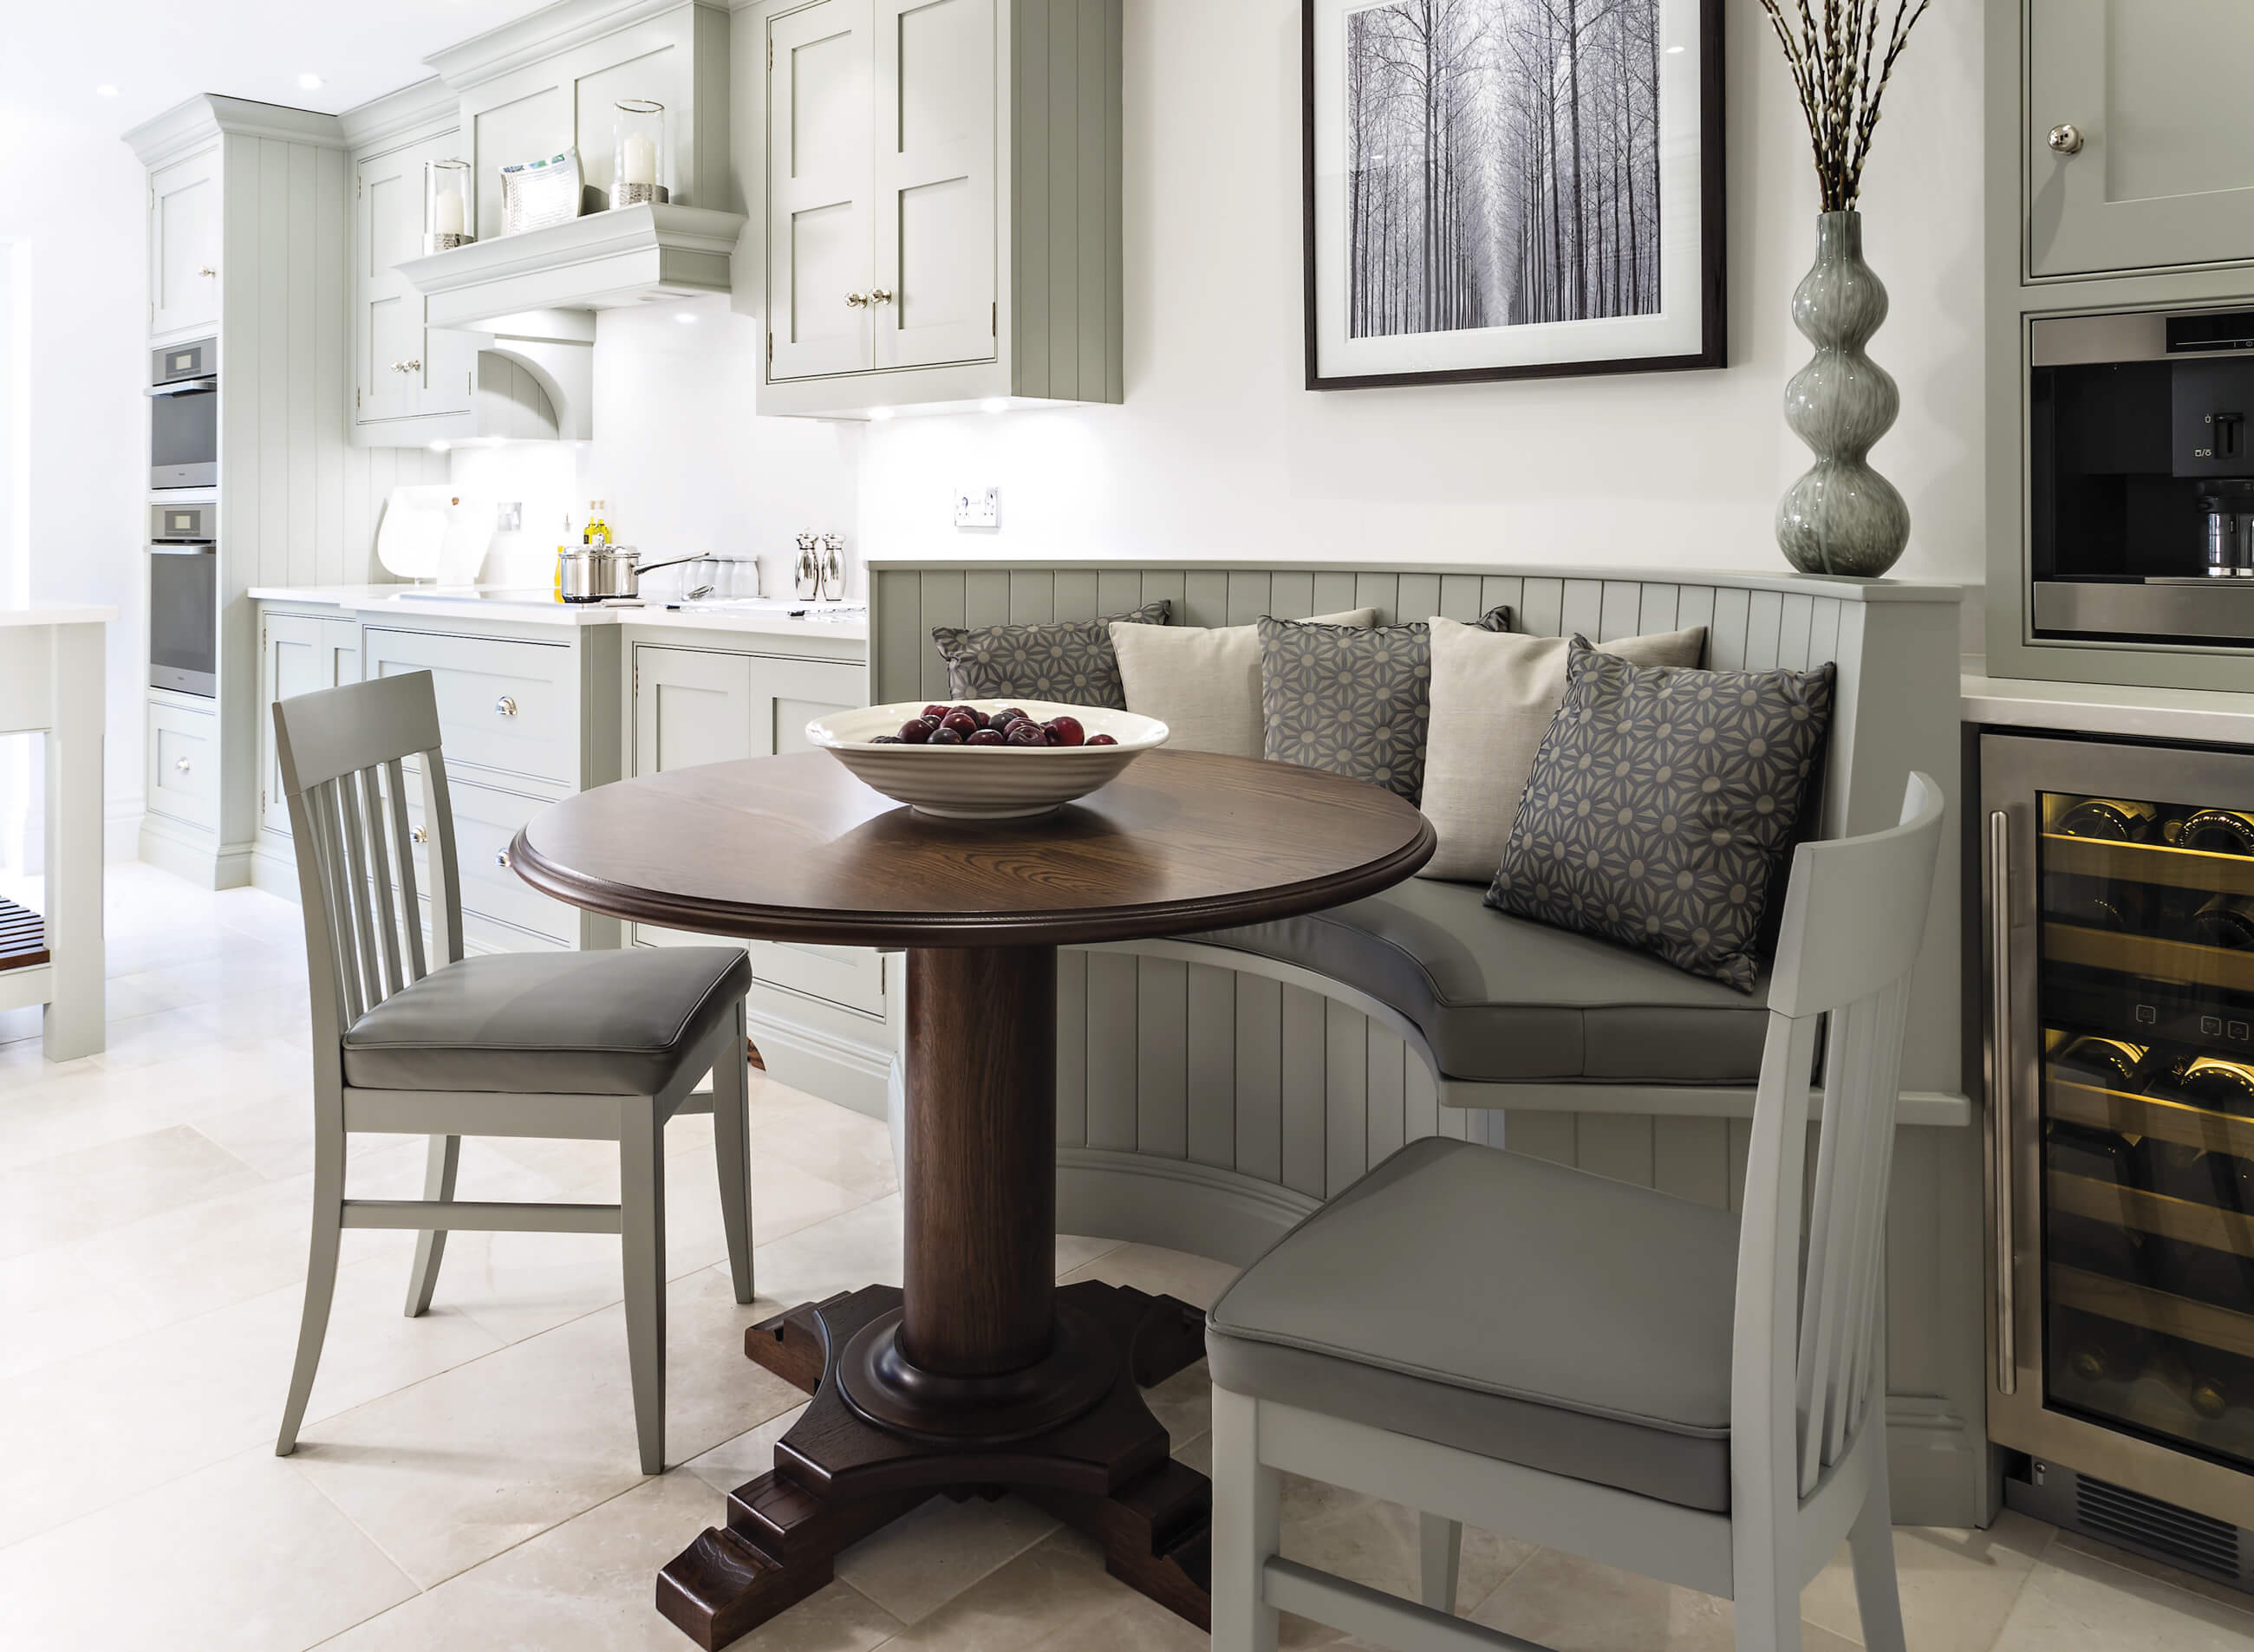 Picture of: Kitchen Bench Seating Seating Dining Tom Howley